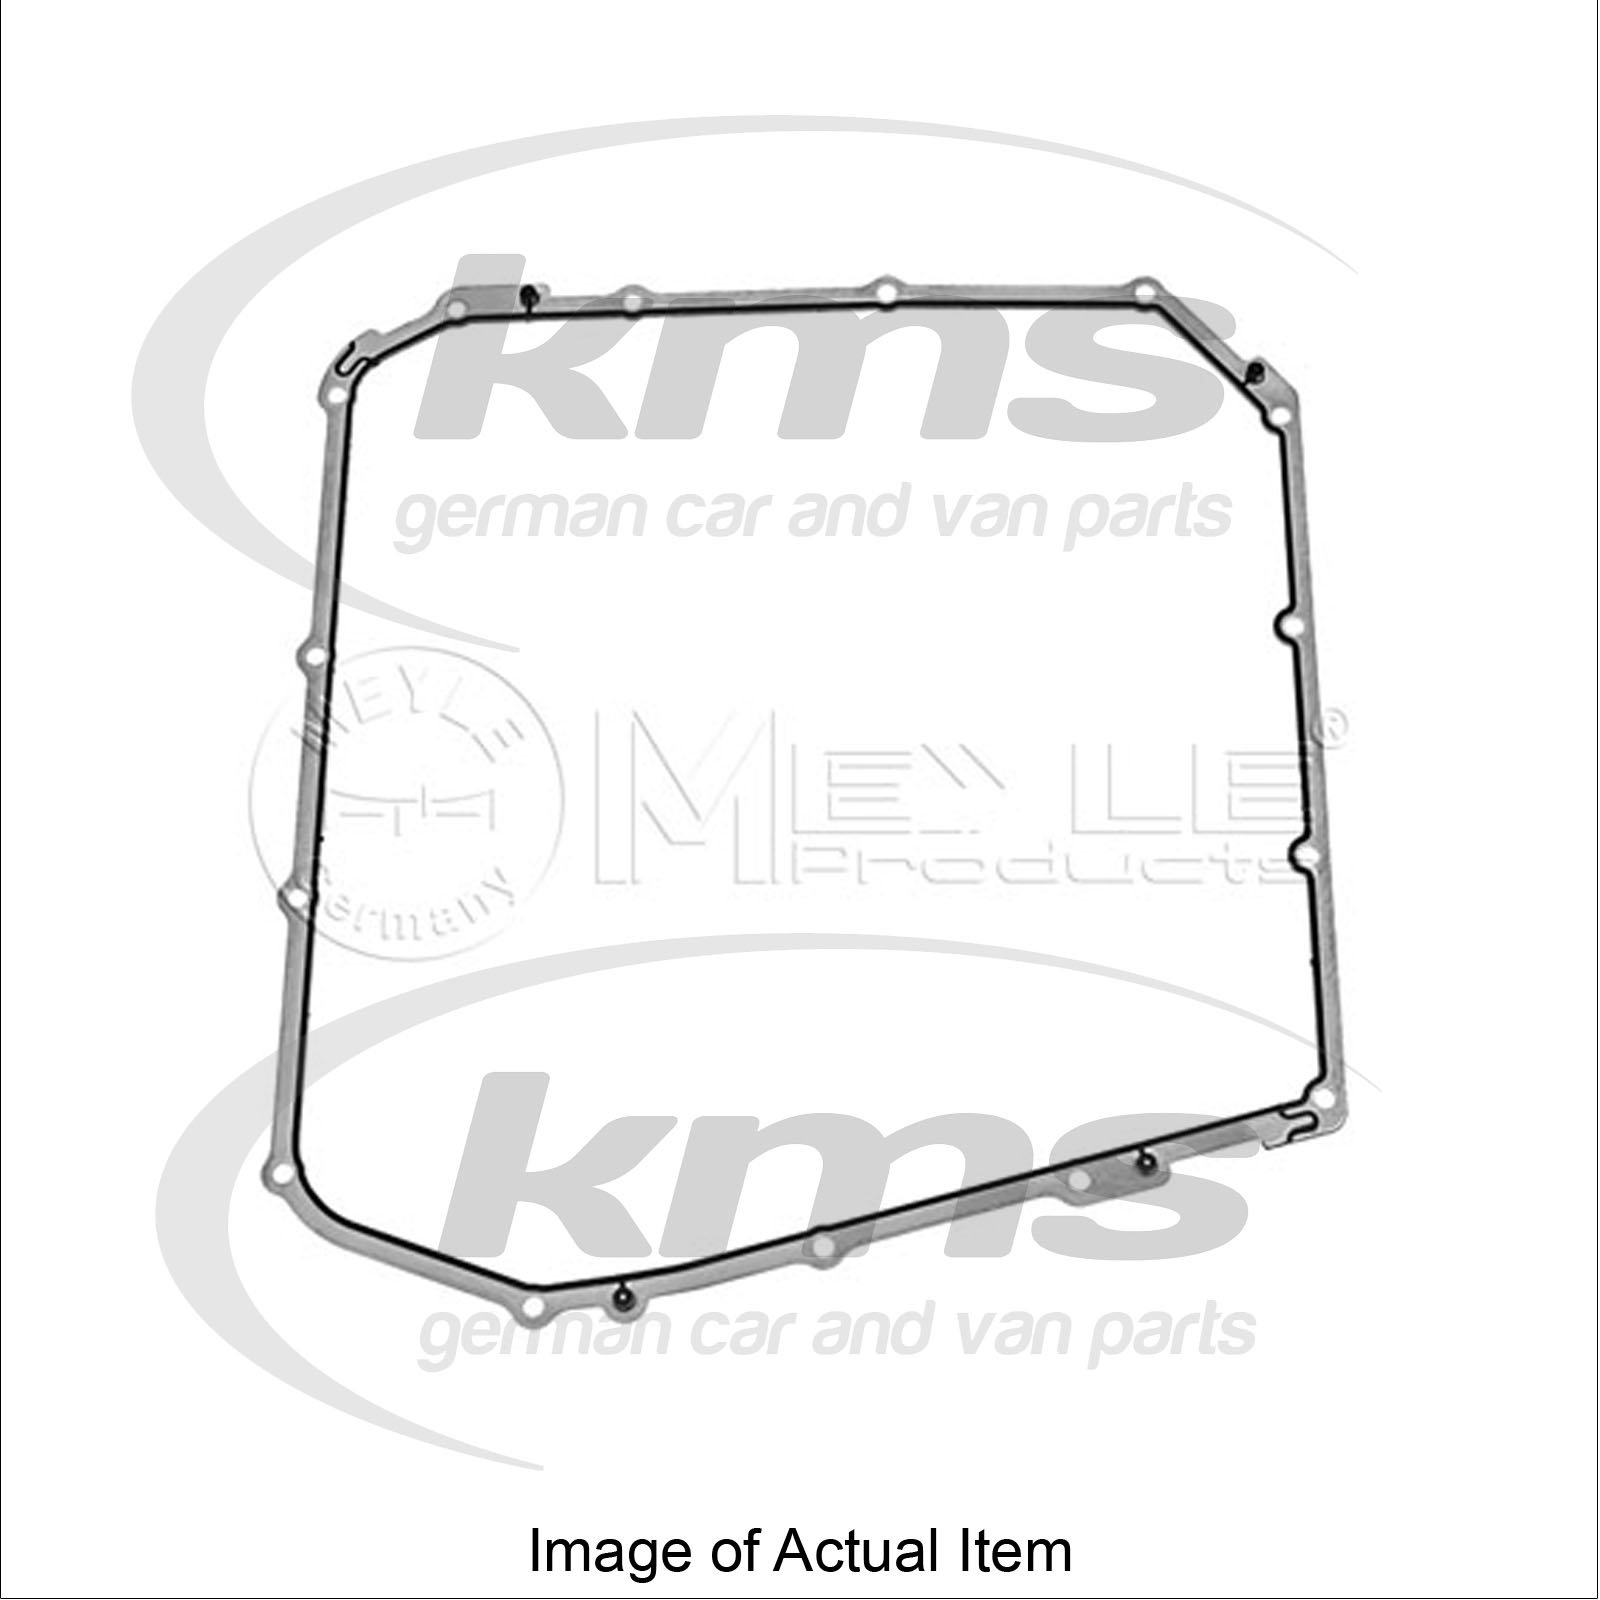 Seal For Auto Transmission Oil Pan Audi A5 Cabriolet 8f7 3 2 Fsi 265bhp Top Ge